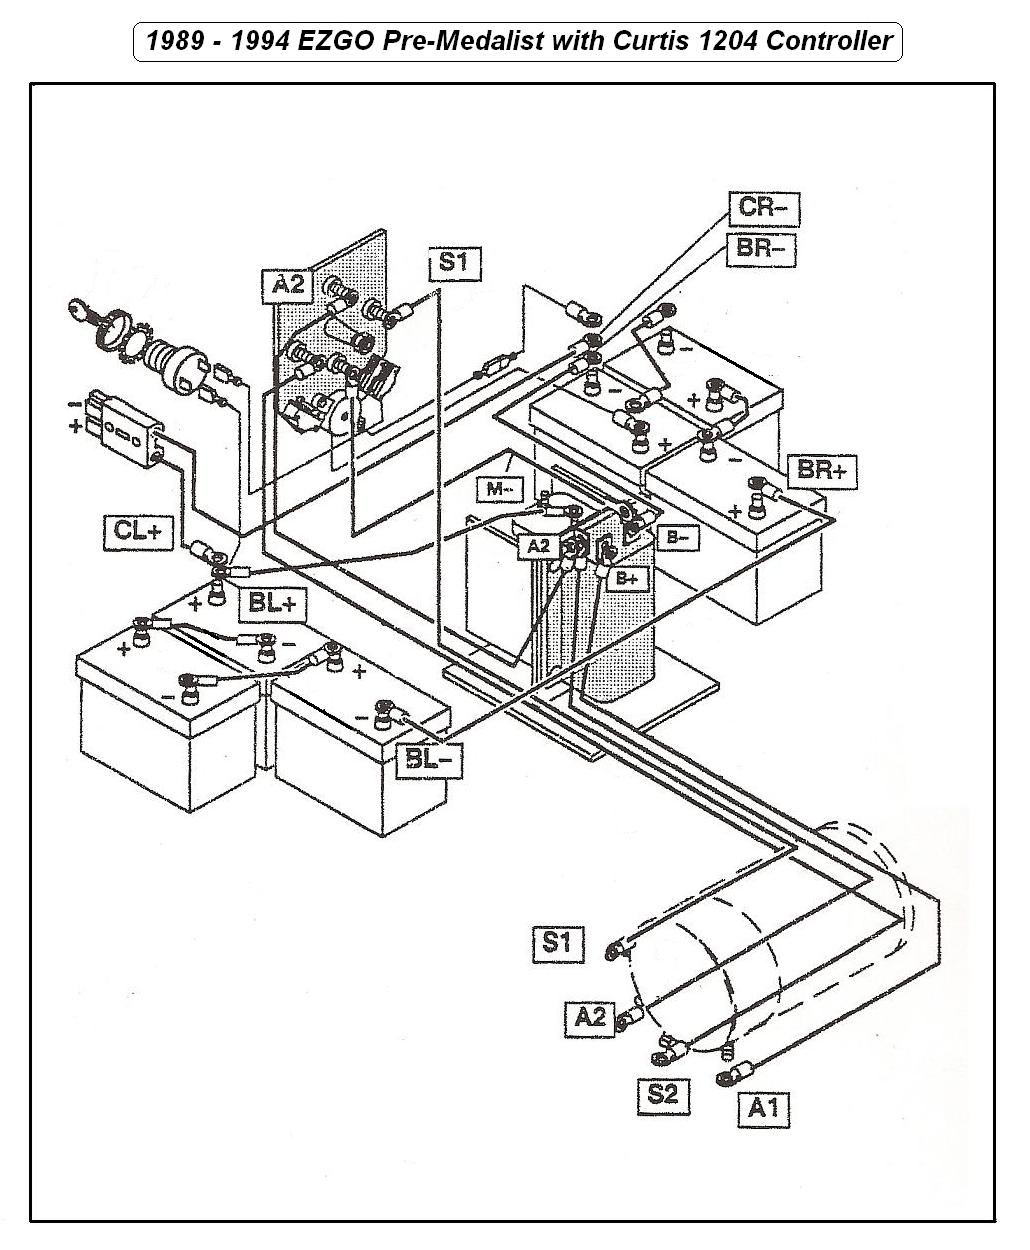 Ez go dom brake light wiring diagram ez go dom 2000 ez go wiring diagram 2000